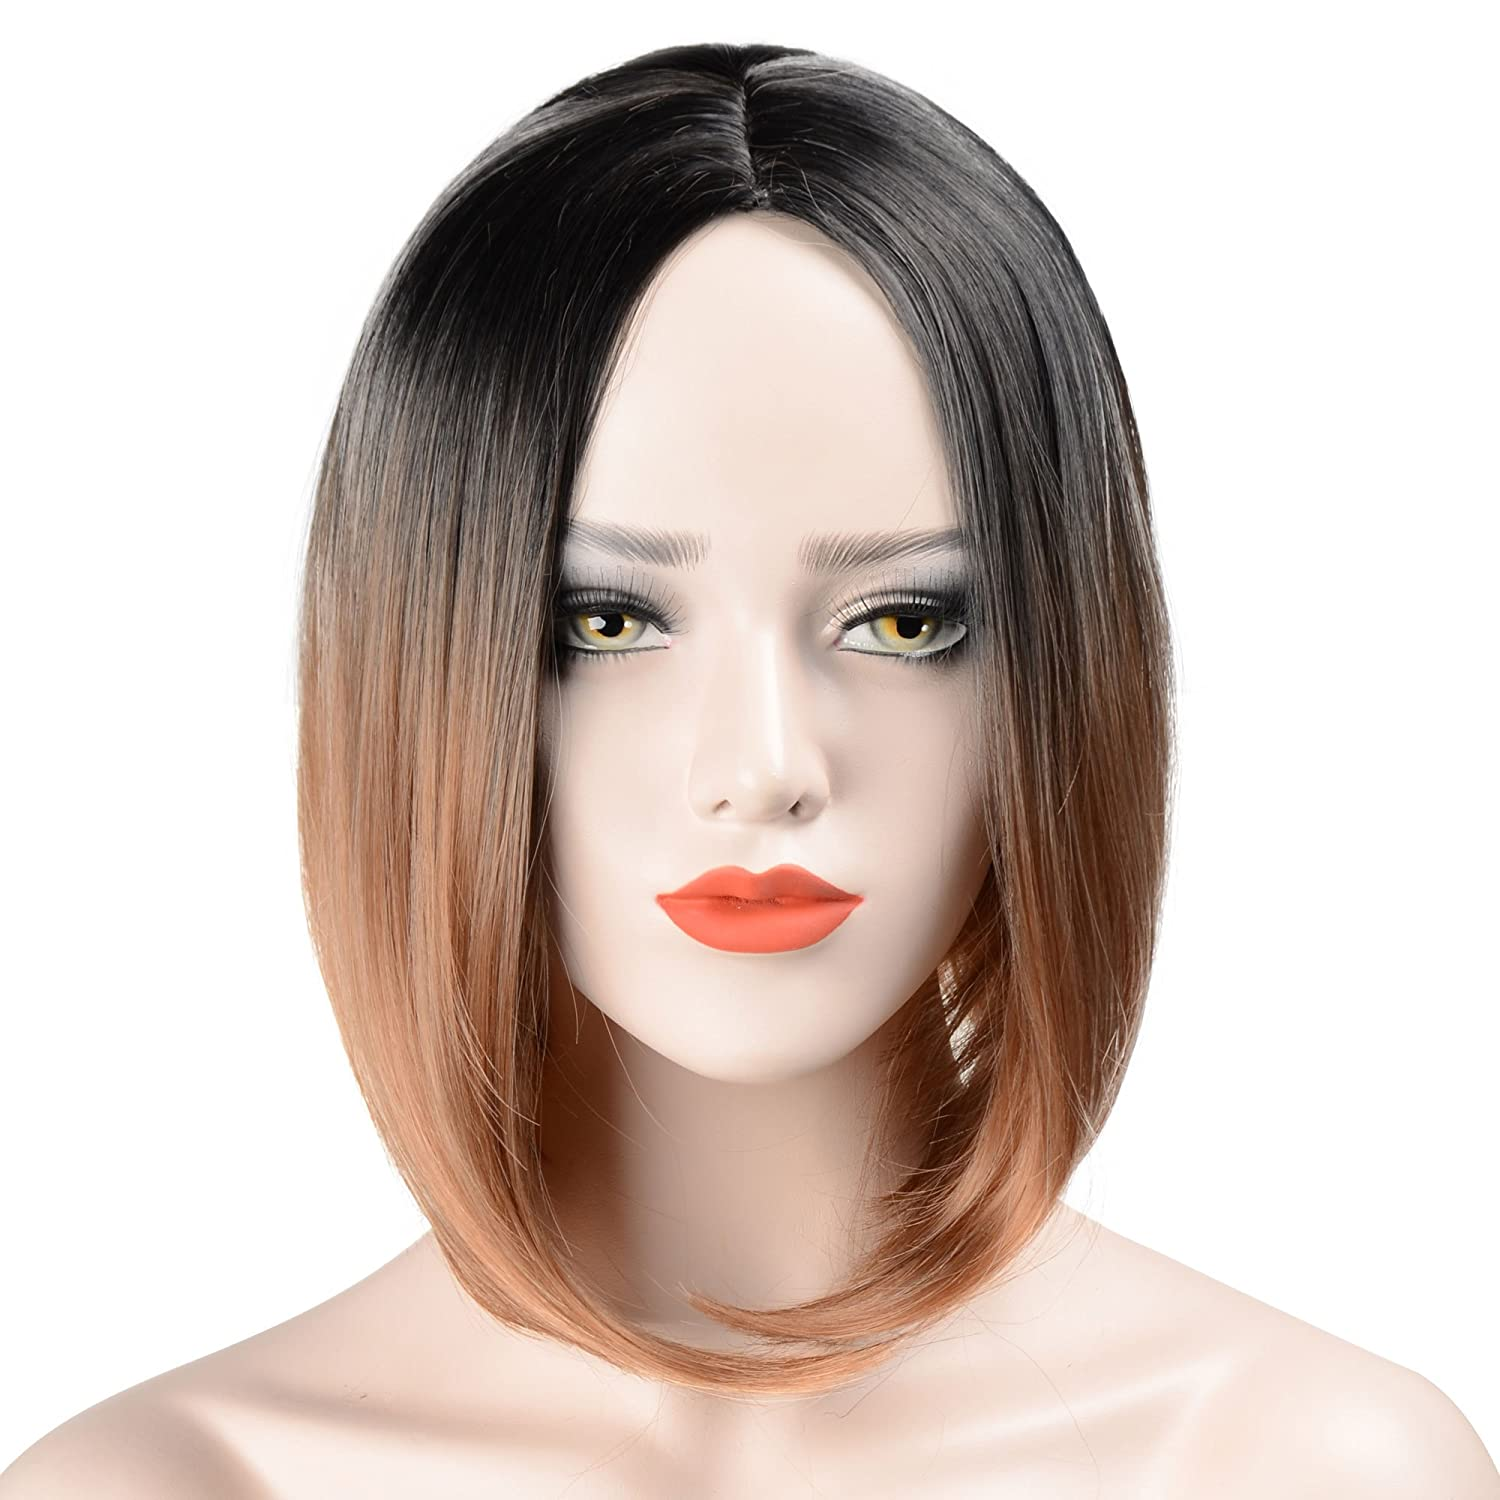 Hawkko Wigs For Black Women Bob Straight Hair Natural Looking Short Ombre Wigs Synthetic Hair Fashion Heat Resistant Full Head(Black/Brown)